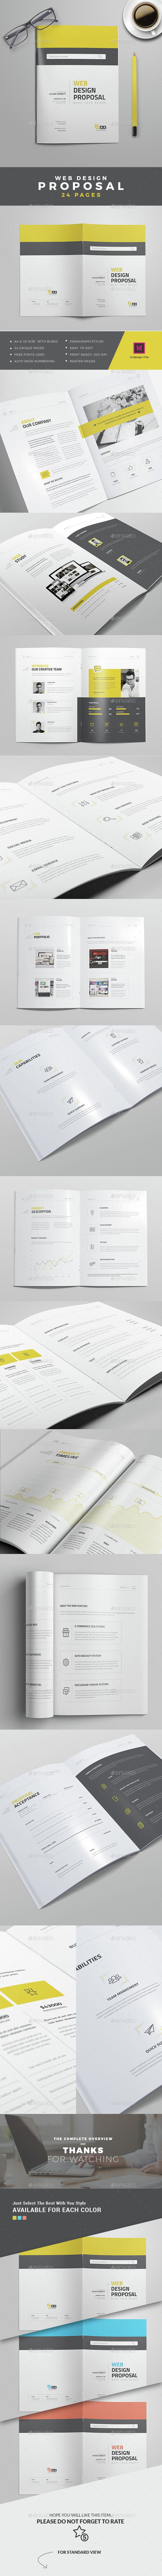 Web Design Proposal  Proposals Proposal Templates And Template